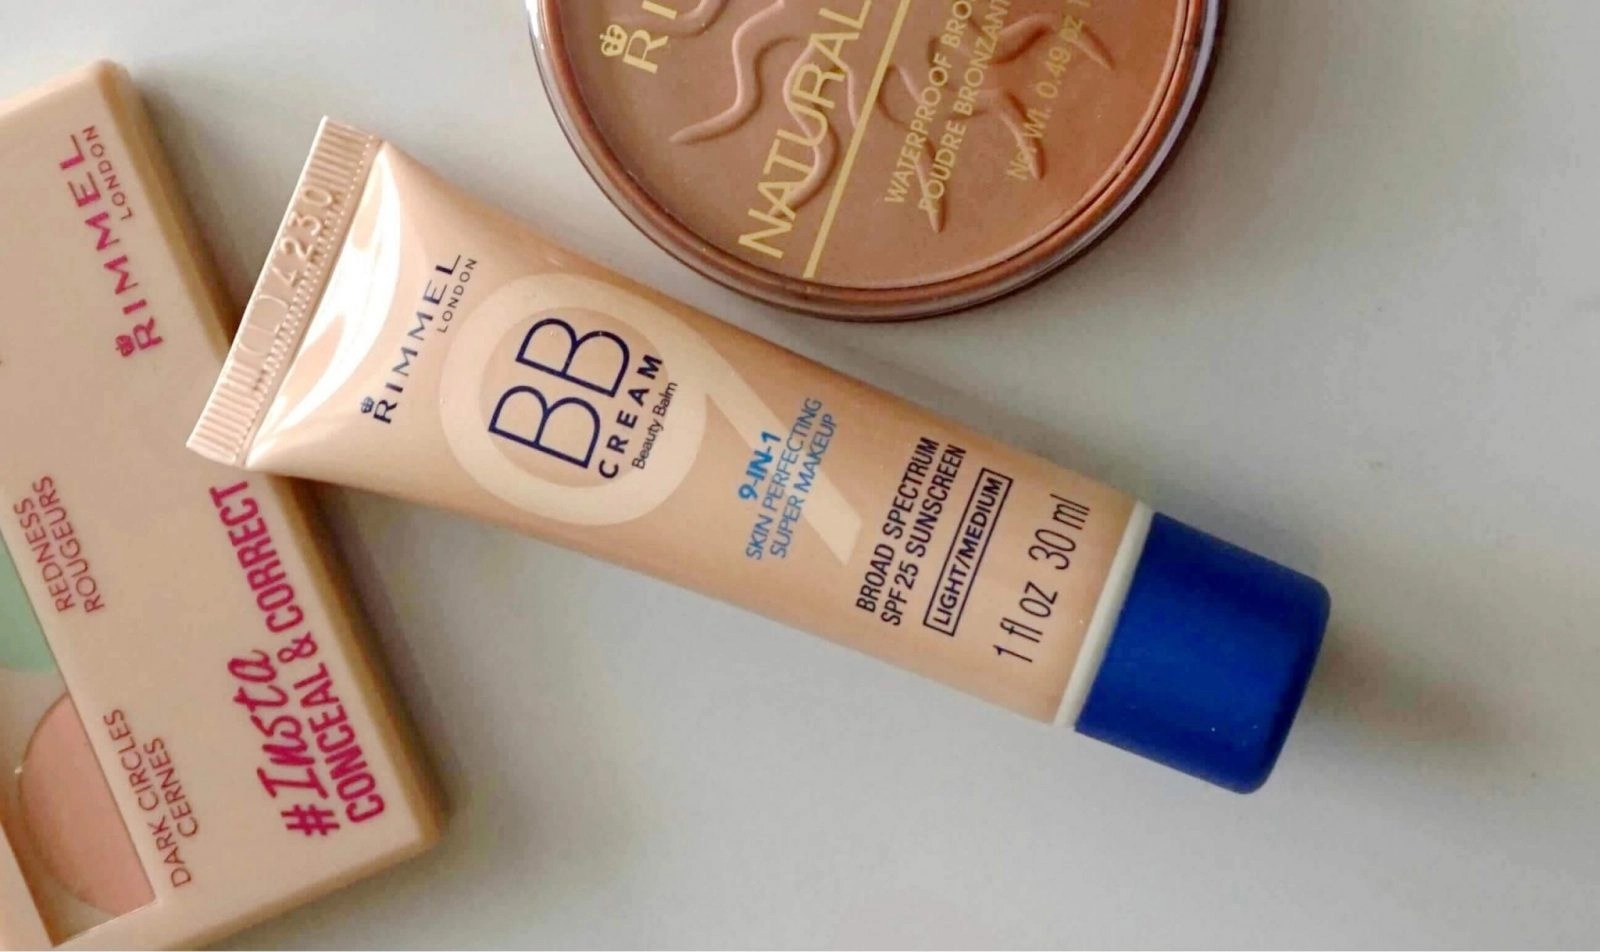 Rimmel BB Cream in Packaging